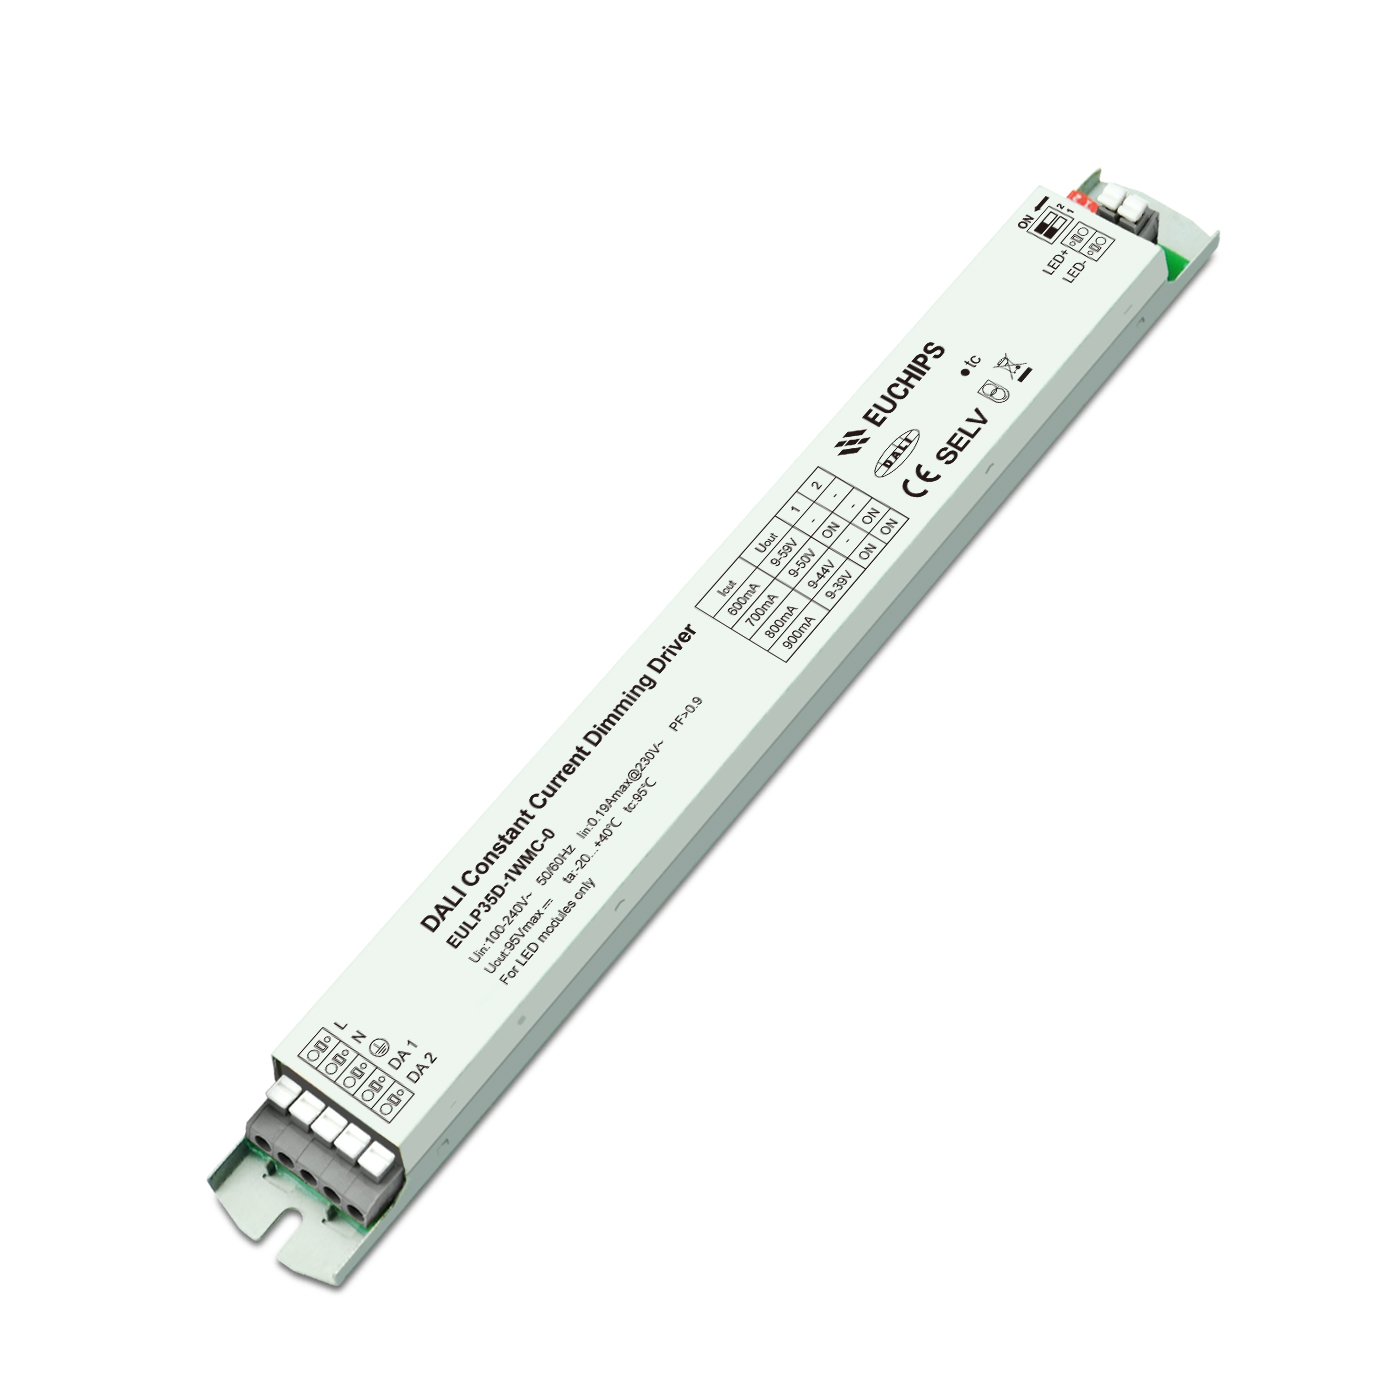 Factory Price Single Color Led Strip Light Dimmer - 35W 600/700/800/900mA*1ch CC DALI Driver – Euchips